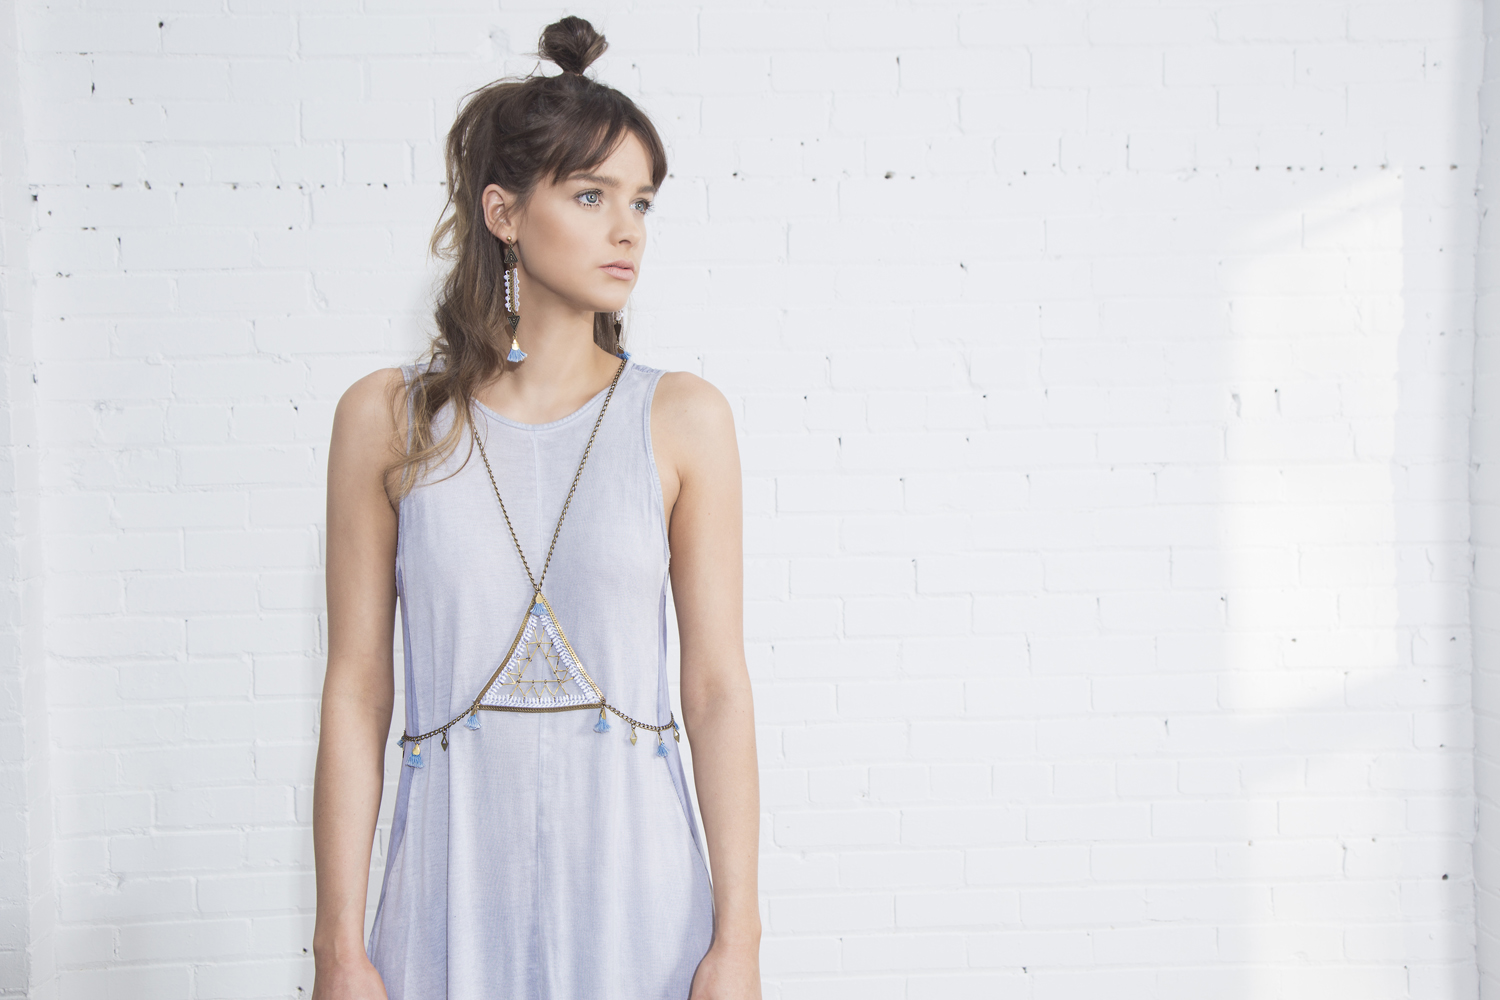 Heyday body harness (details here)  +  Zenith earrings (details here)